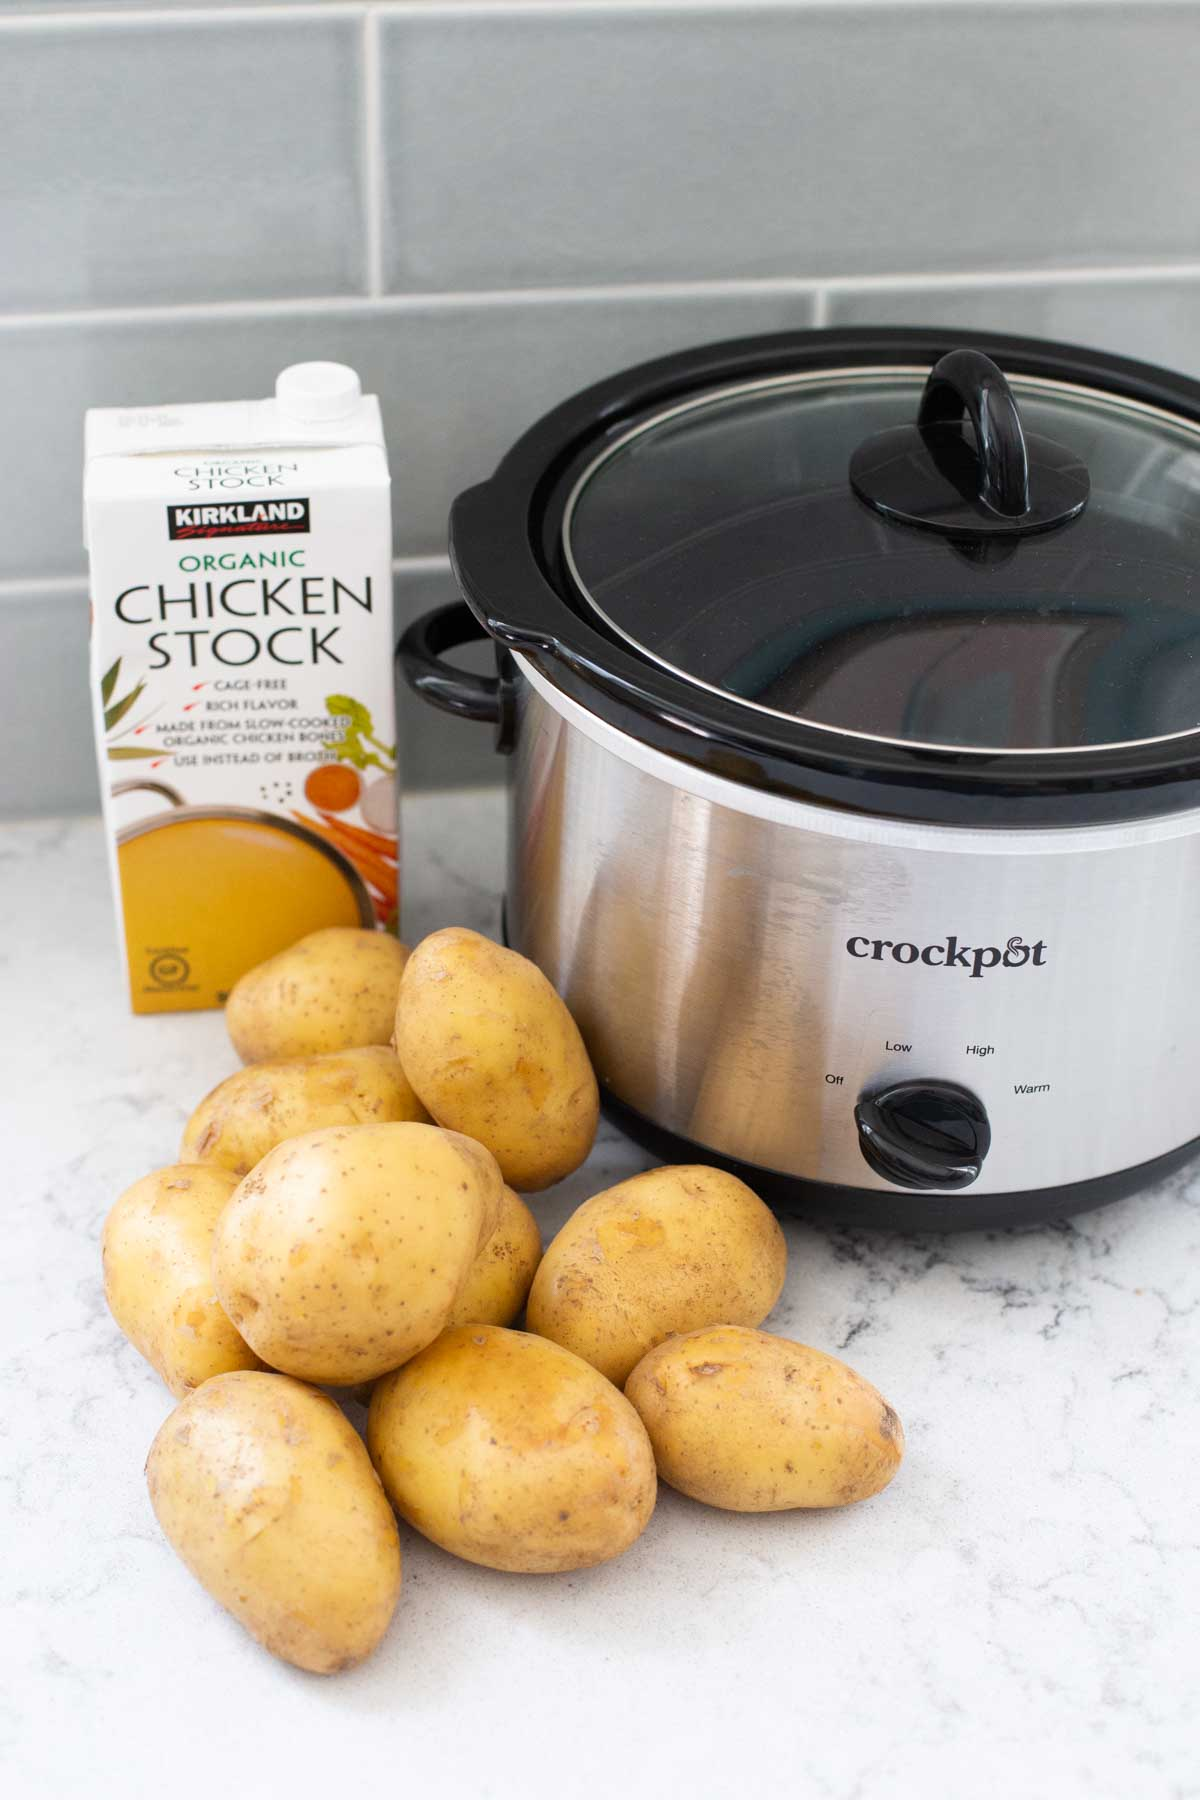 The ingredients for Crockpot mashed potatoes are on a kitchen counter next to a slowcooker.